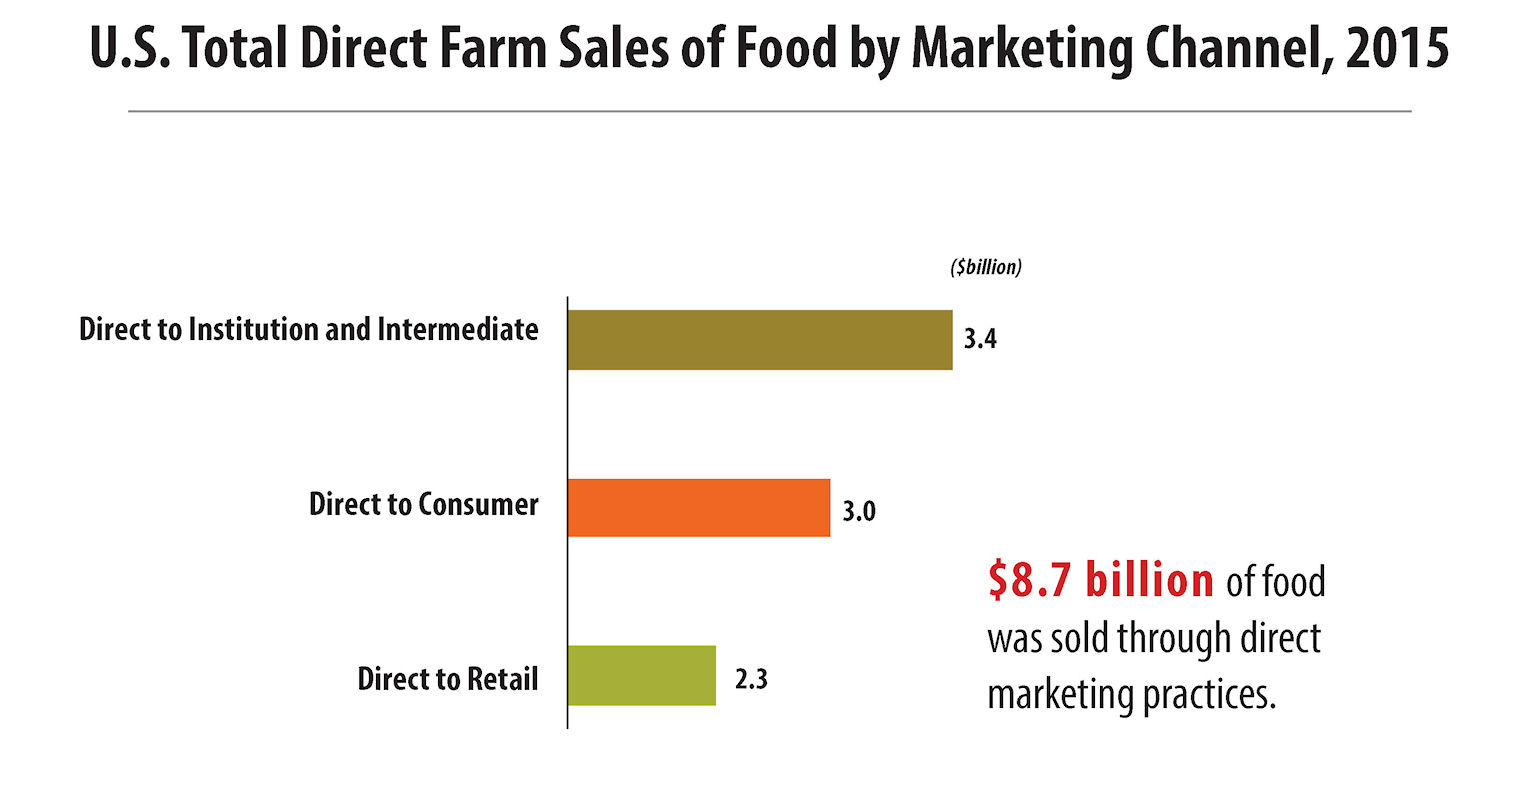 Total Farm Sales of Food by Marketing Channel 2015